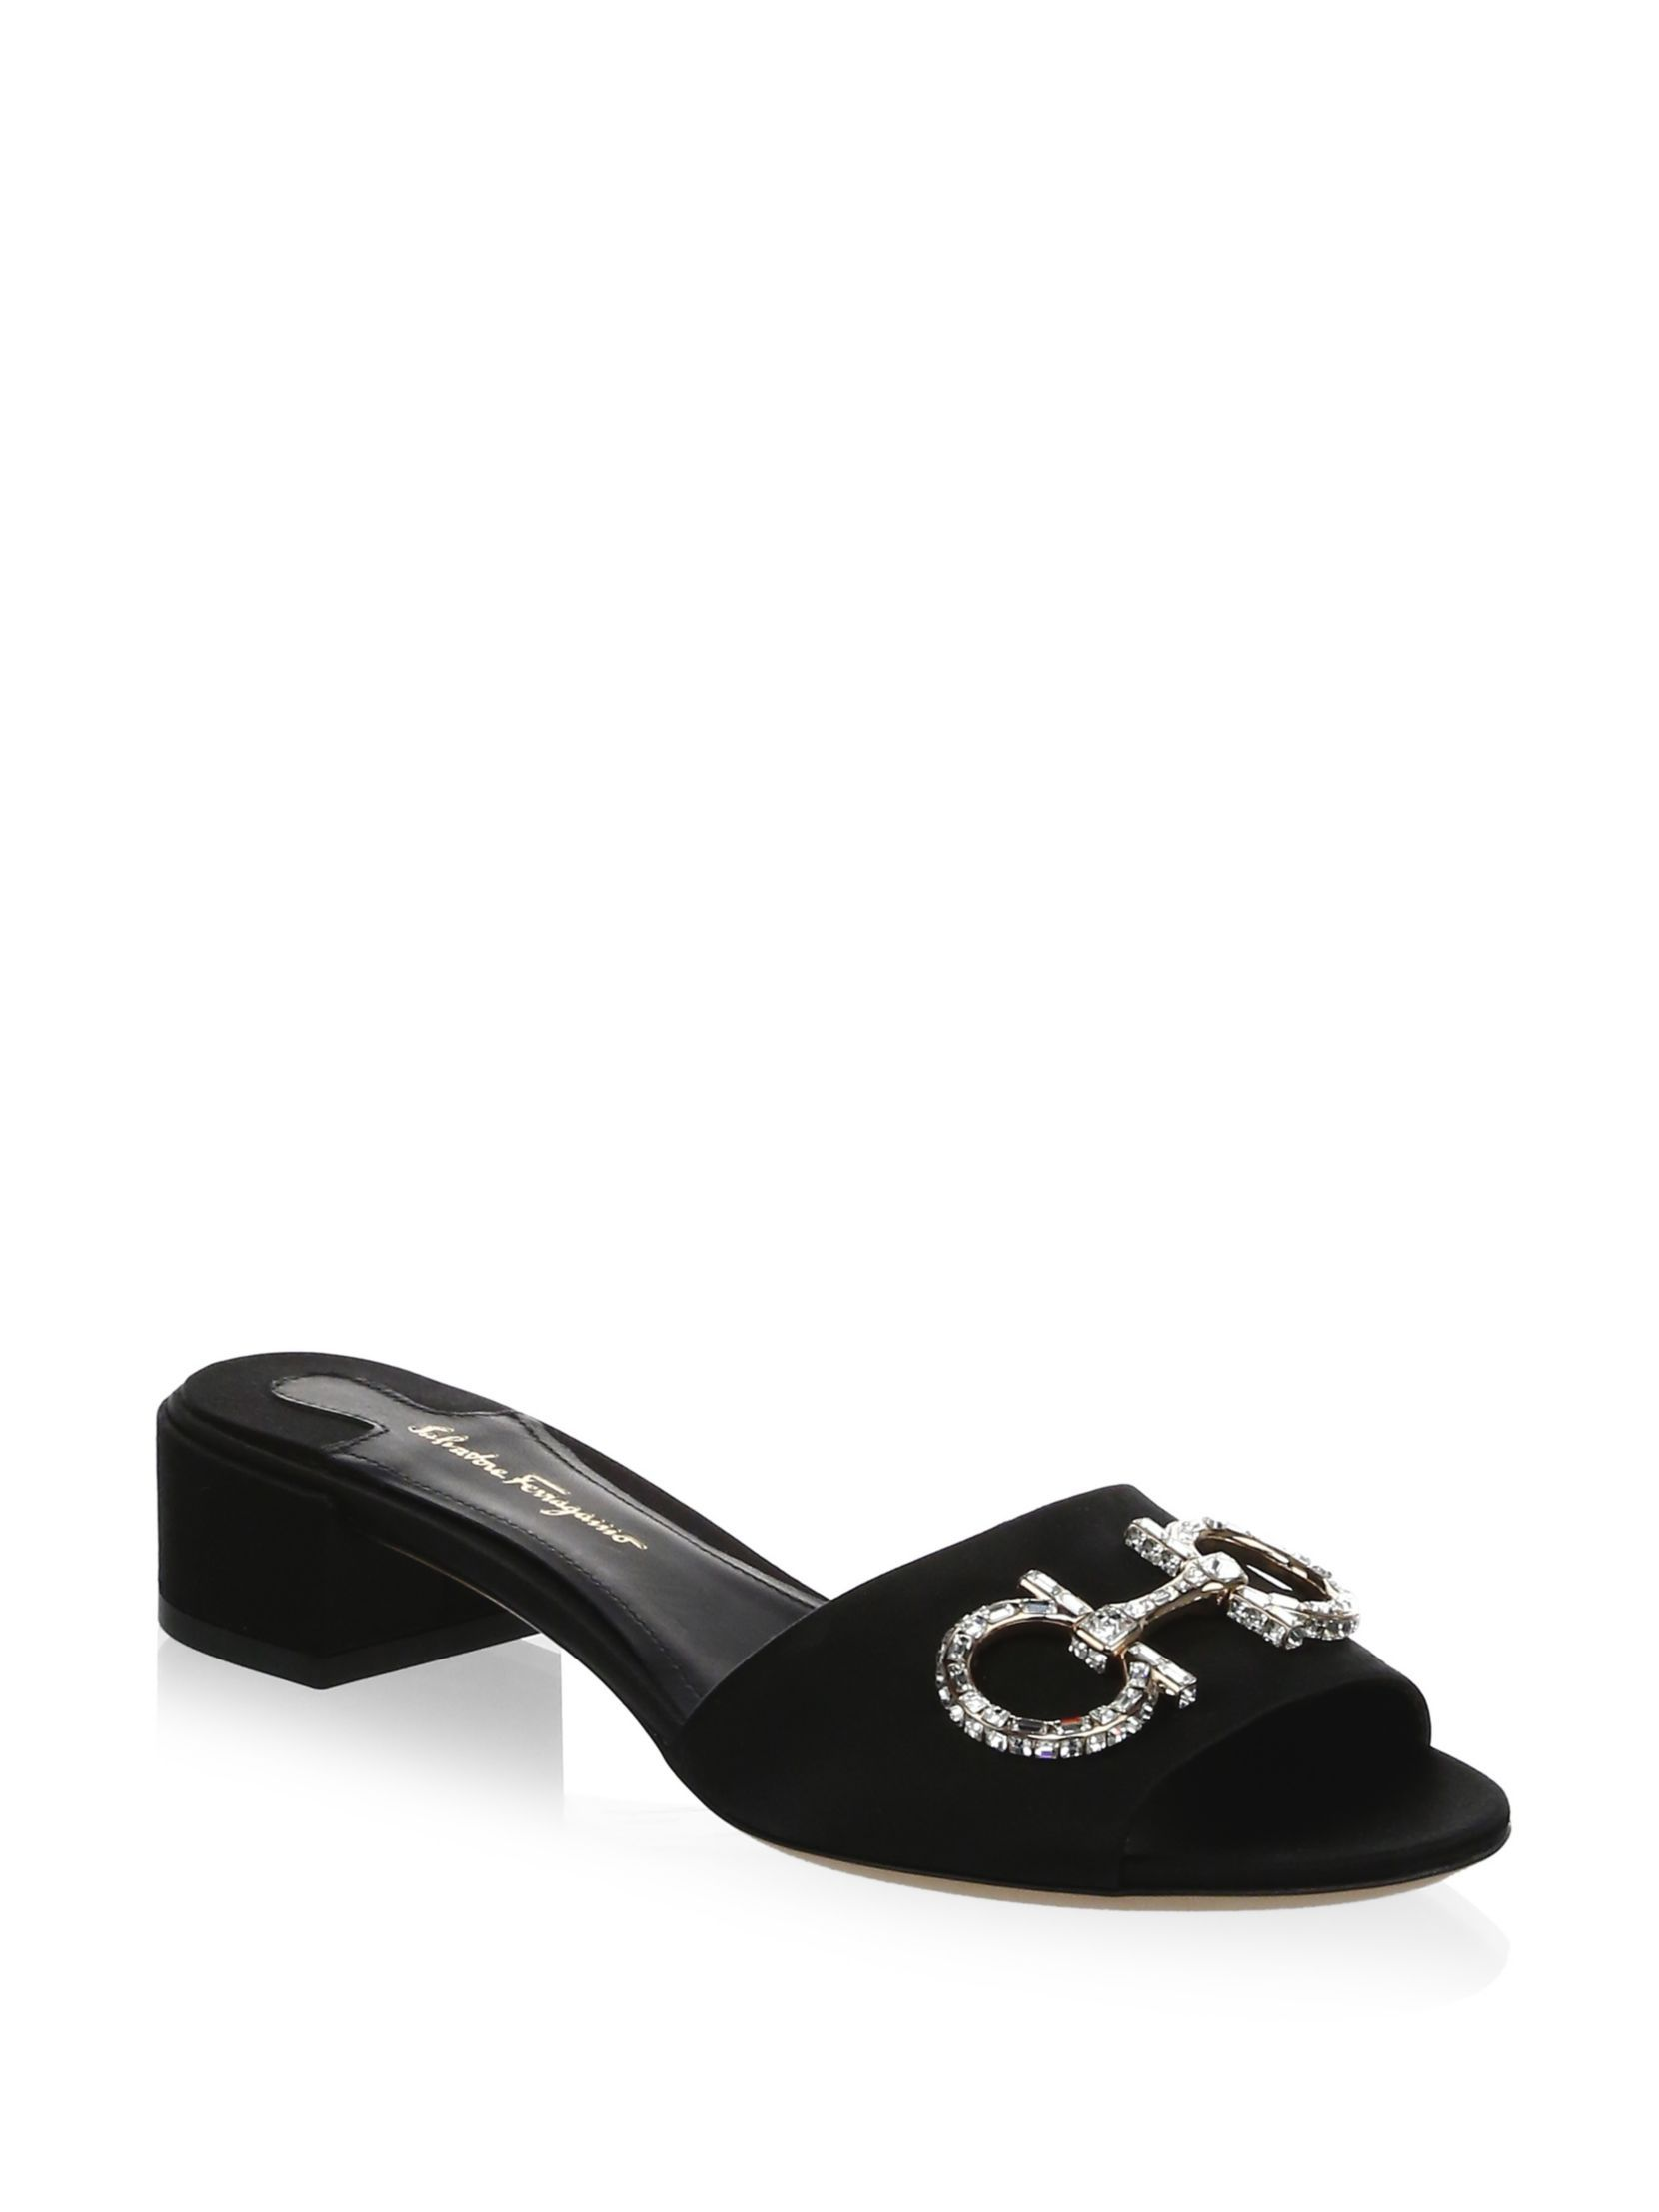 Salvatore Ferragamo embellished Lampio mules latest collections cheap online huge surprise online real cheap online a86TgUGm